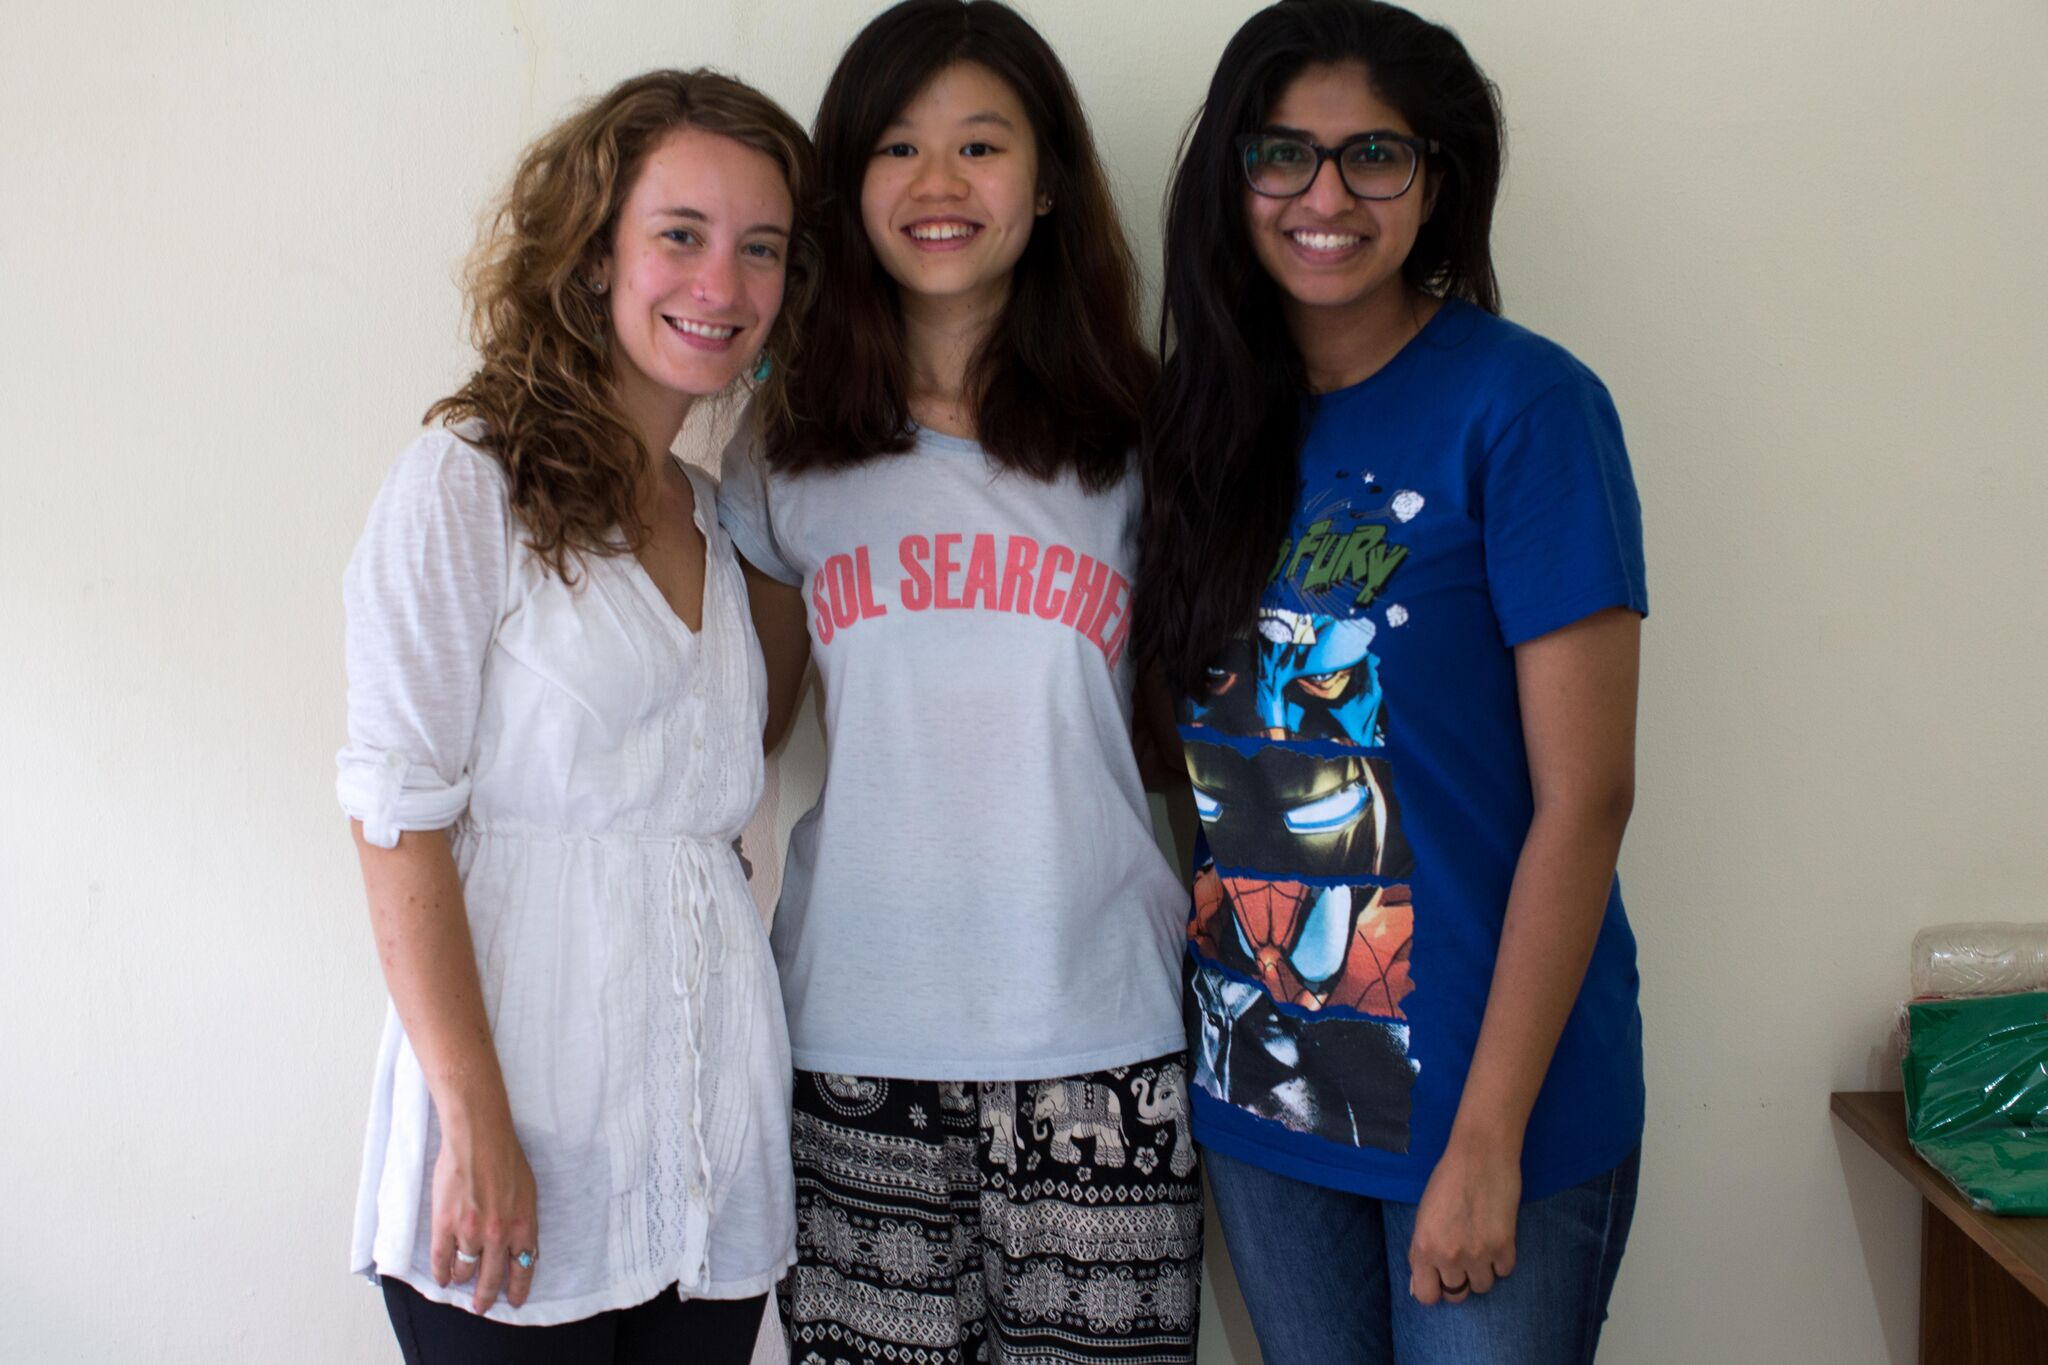 Last but not least, our international interns for 2016: Chelsea Call (left), Rachel Tan (middle), Saman Amir (right)